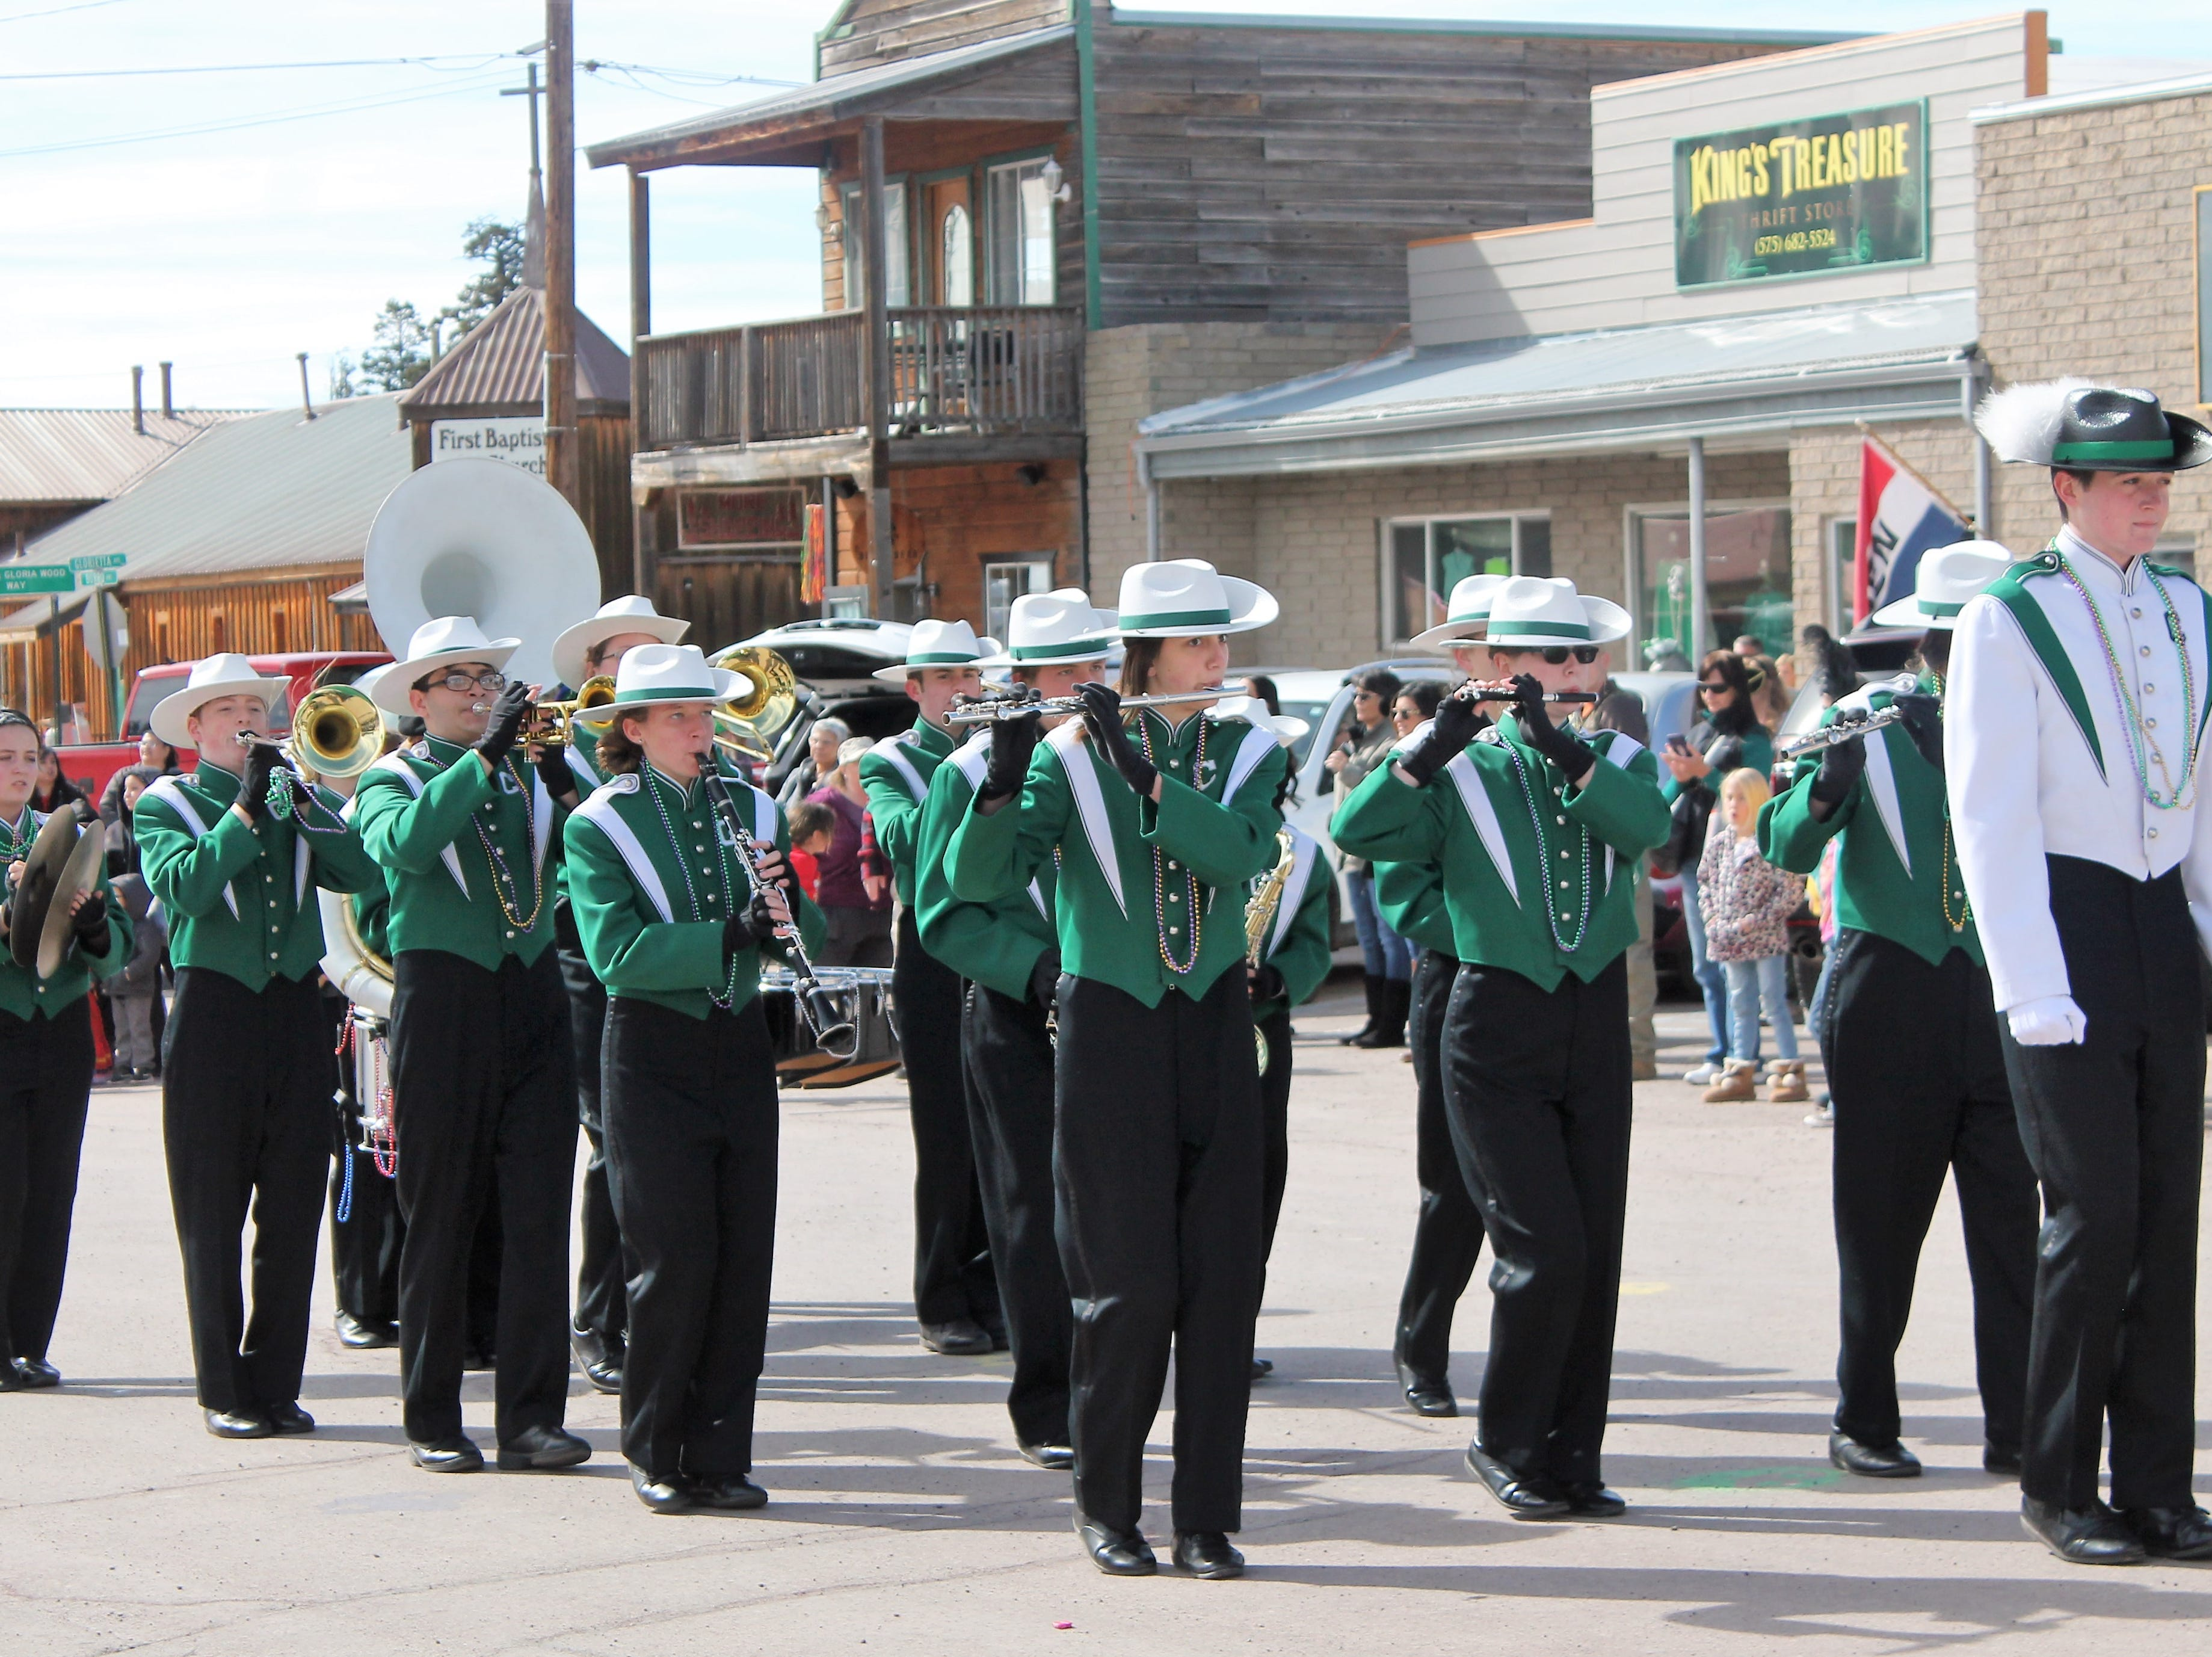 The Cloudcroft High School Marching Band at the Mardi Gras Parade in Cloudcroft Saturday.